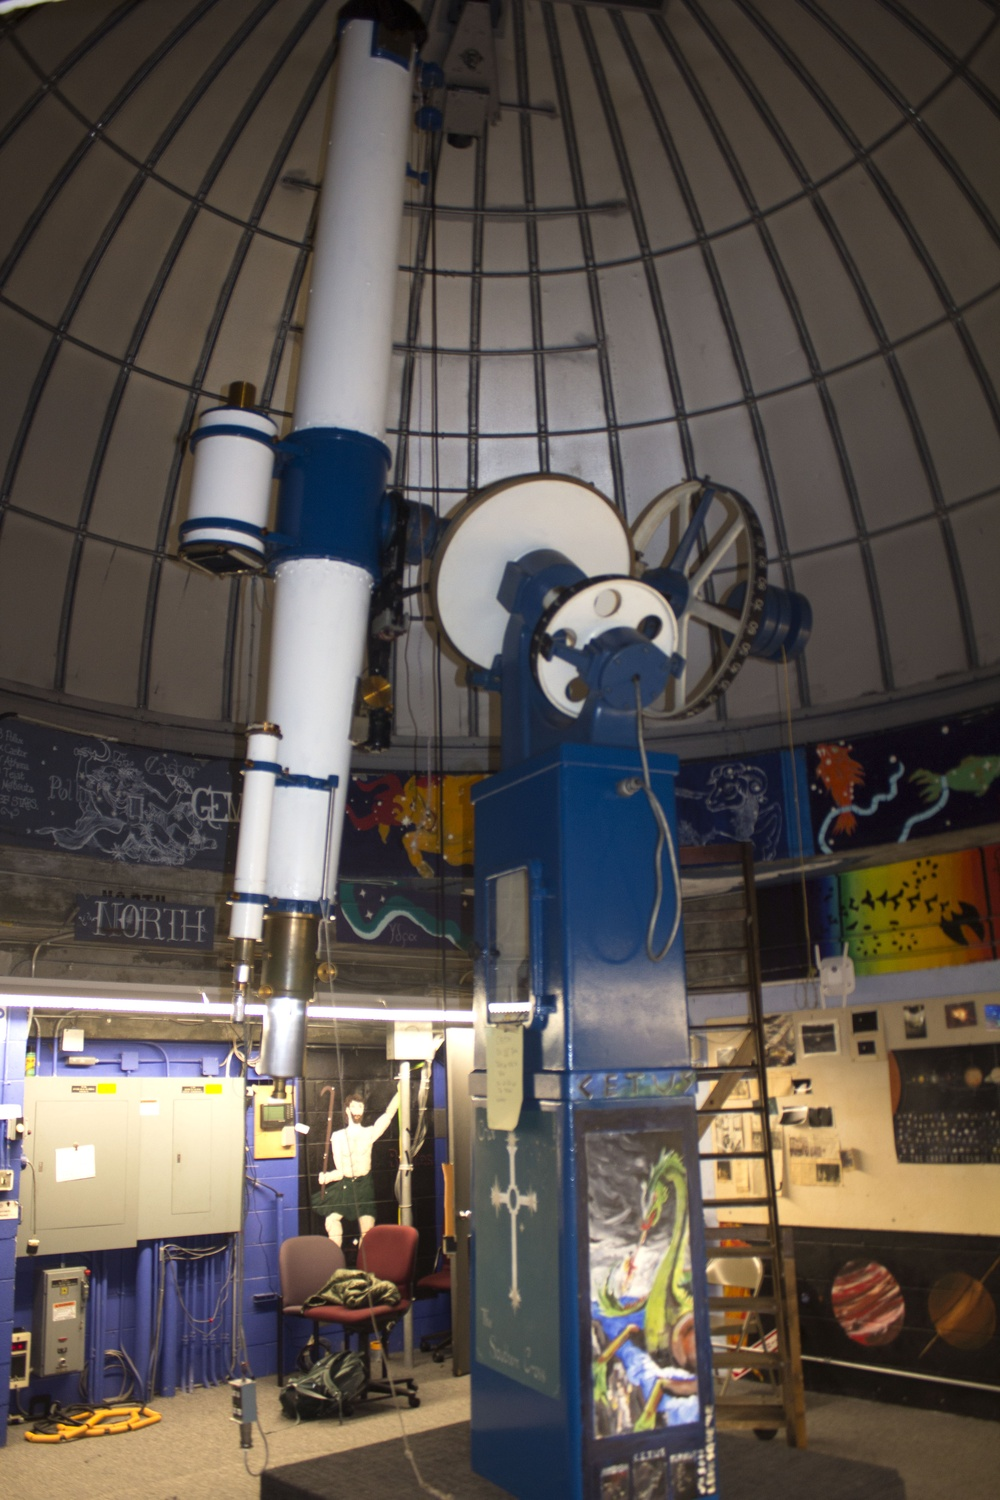 The Student Astronomers at Harvard-Radcliffe, a student group known as STAHR, recently announced that the Loomis-Michael Observatory is under repair.